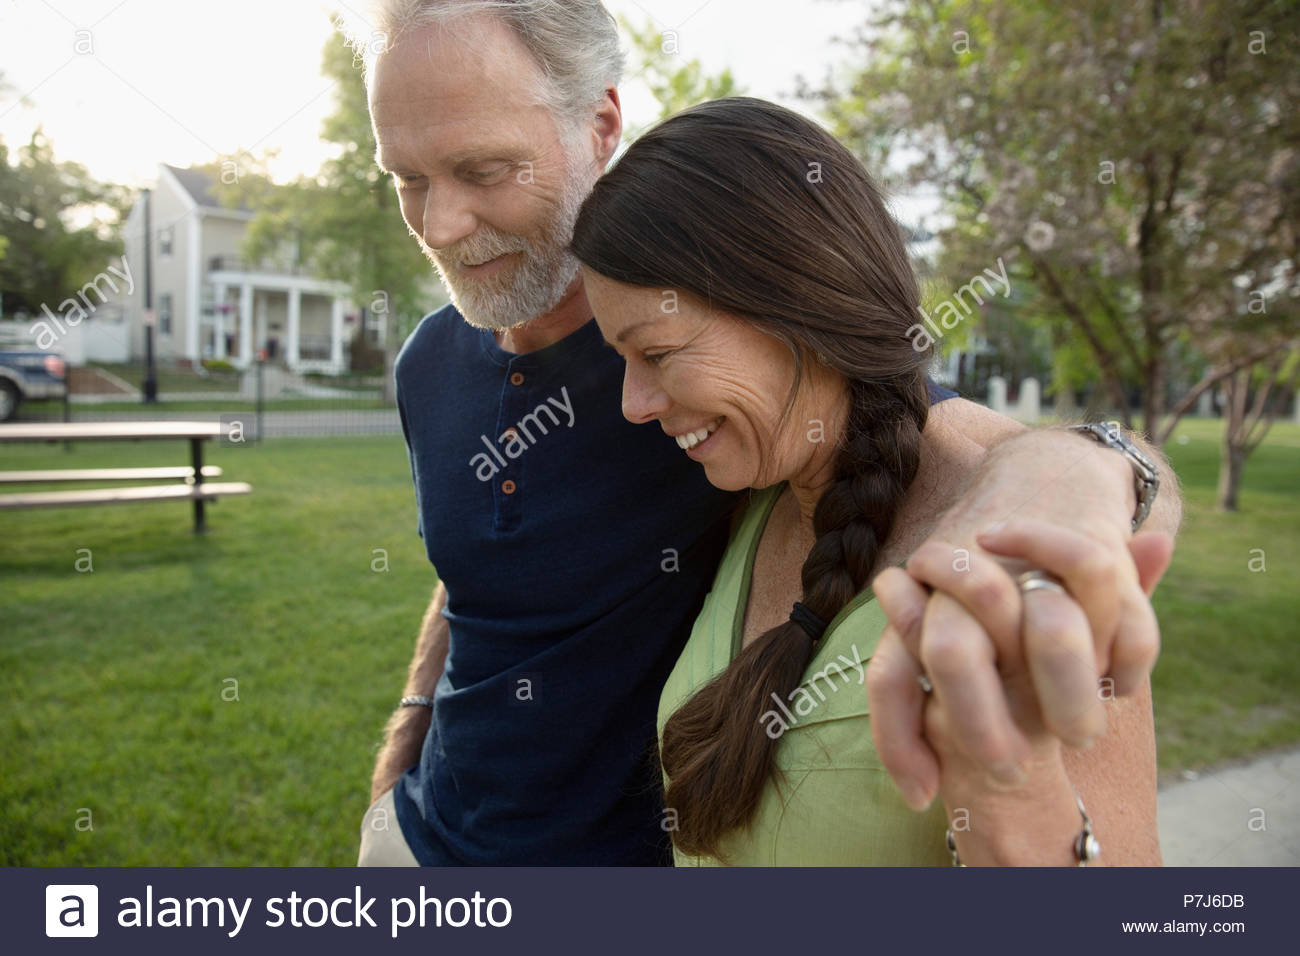 Romantic couple holding hands and walking in park Photo Stock